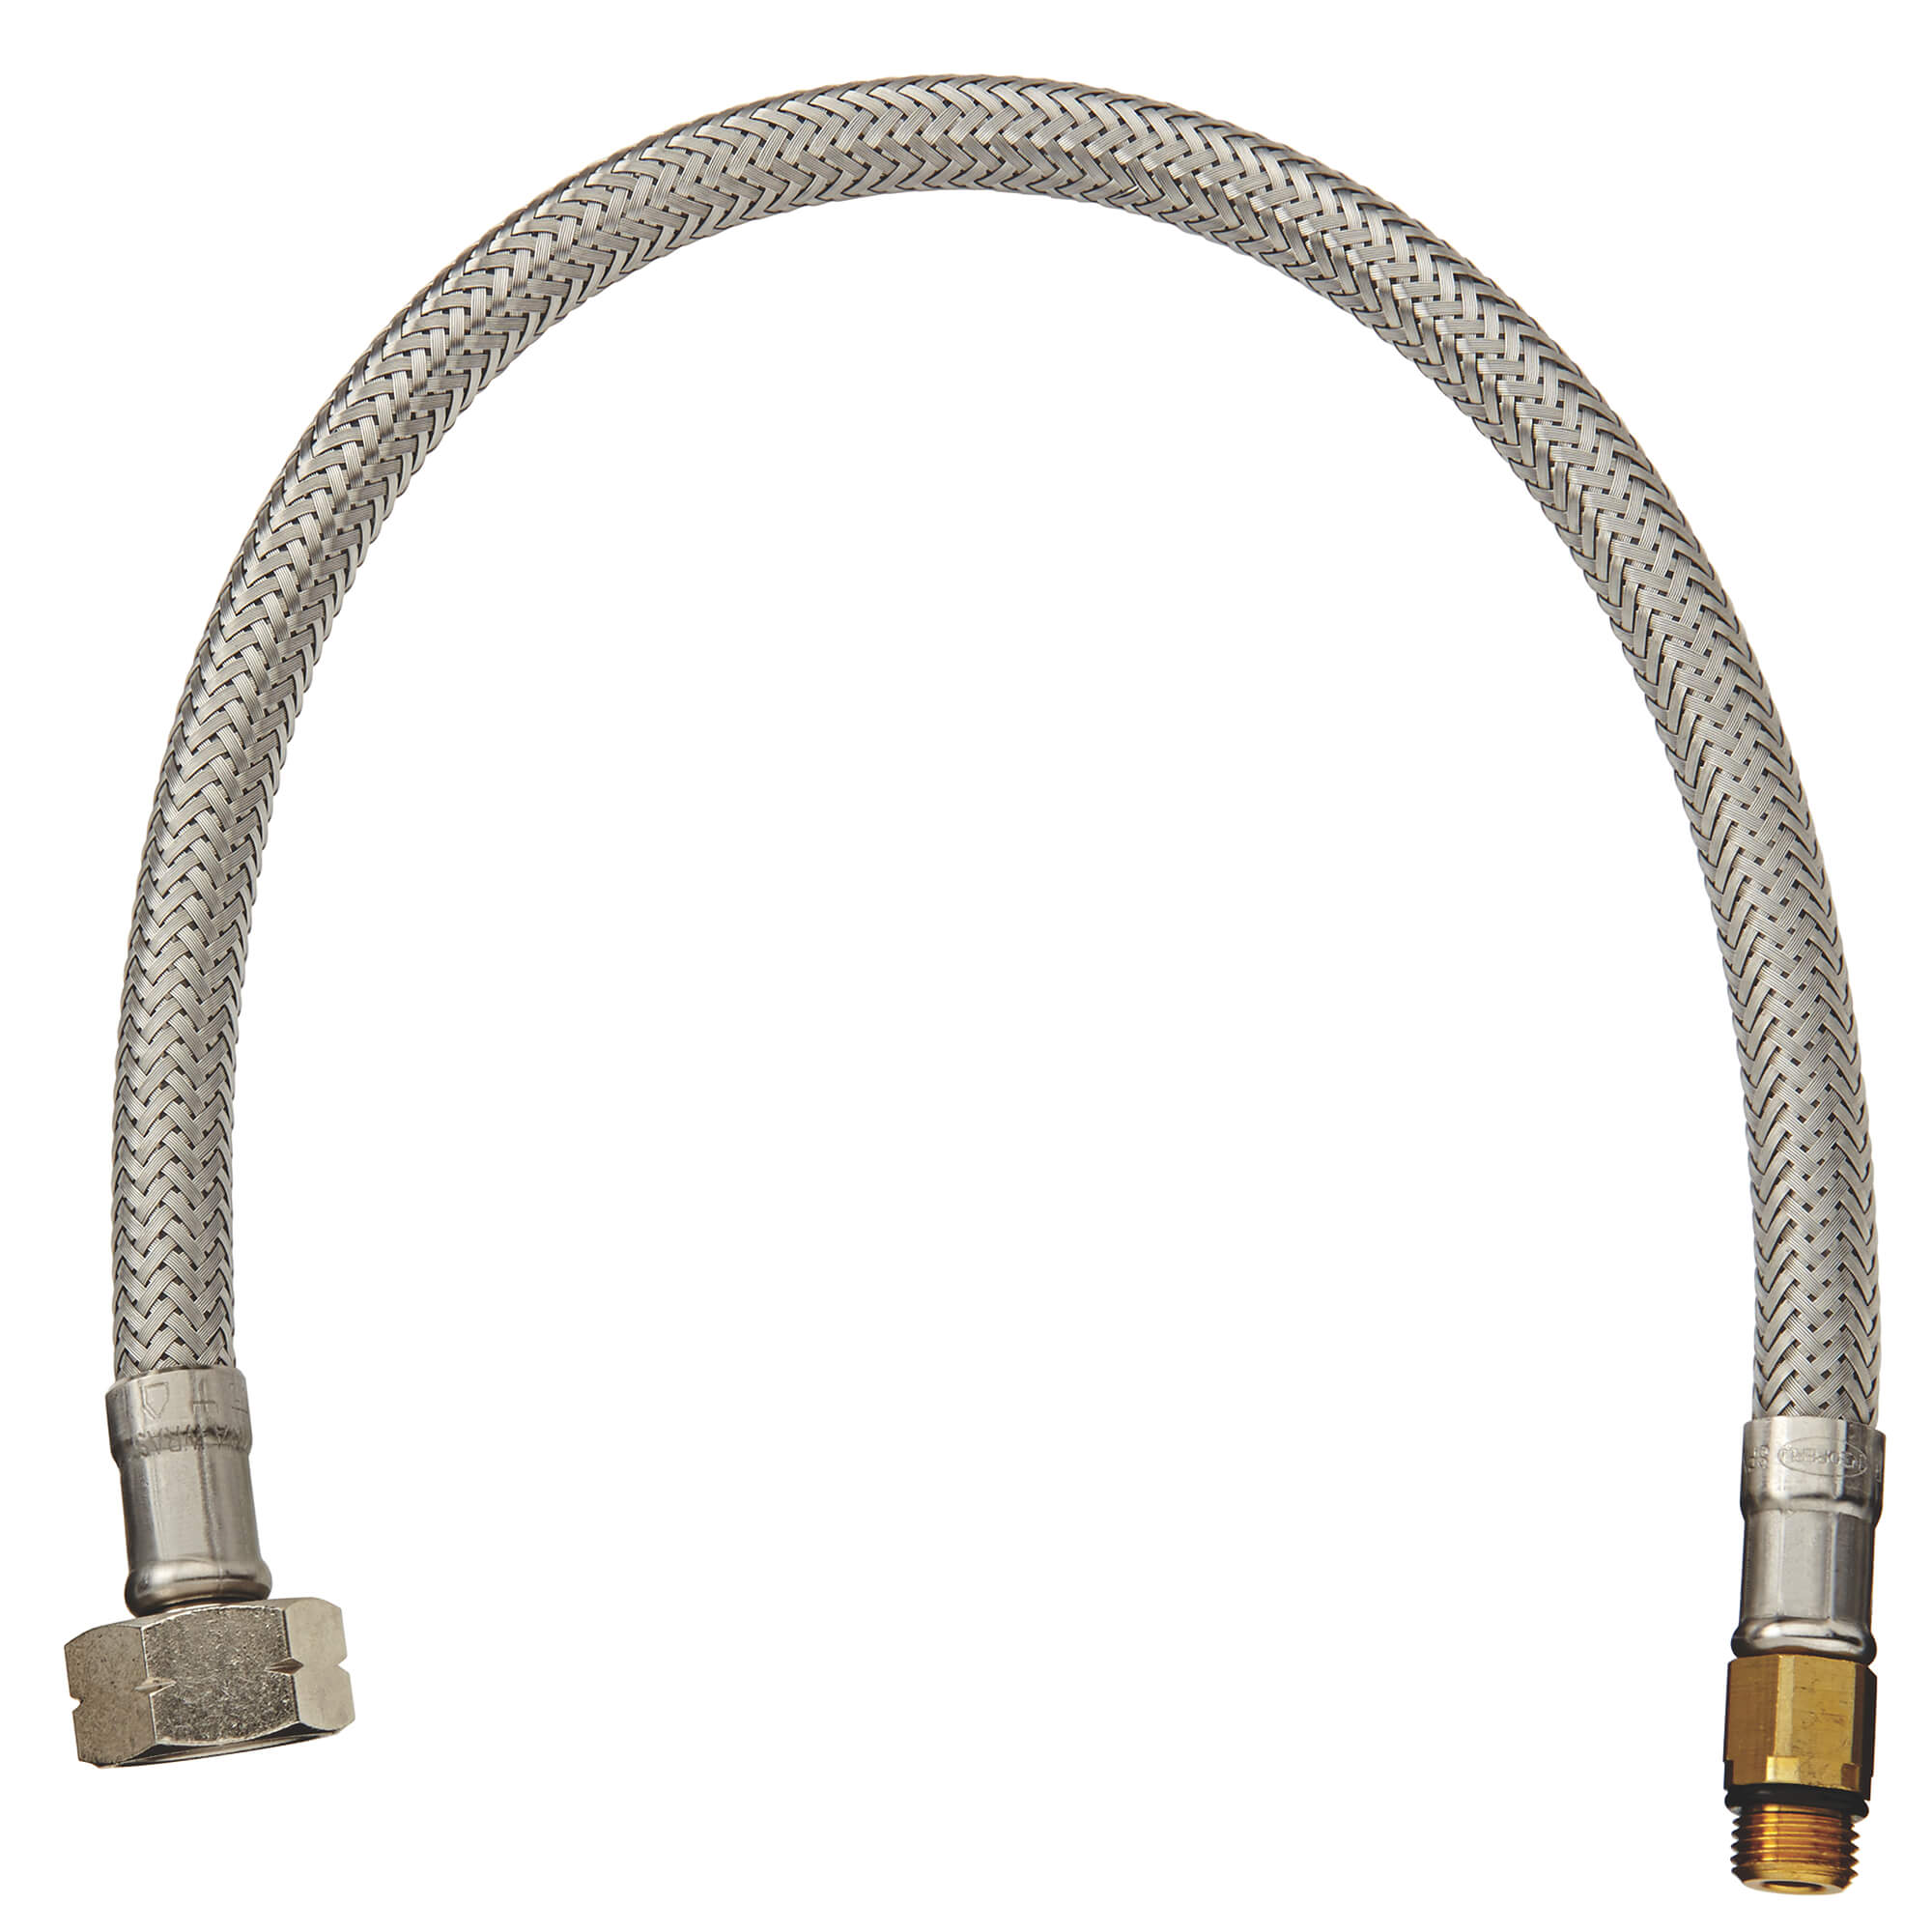 Flexible Connector 3 8 Inch X 5 8 Inch X 13 3 4 Inch GROHE CHROME